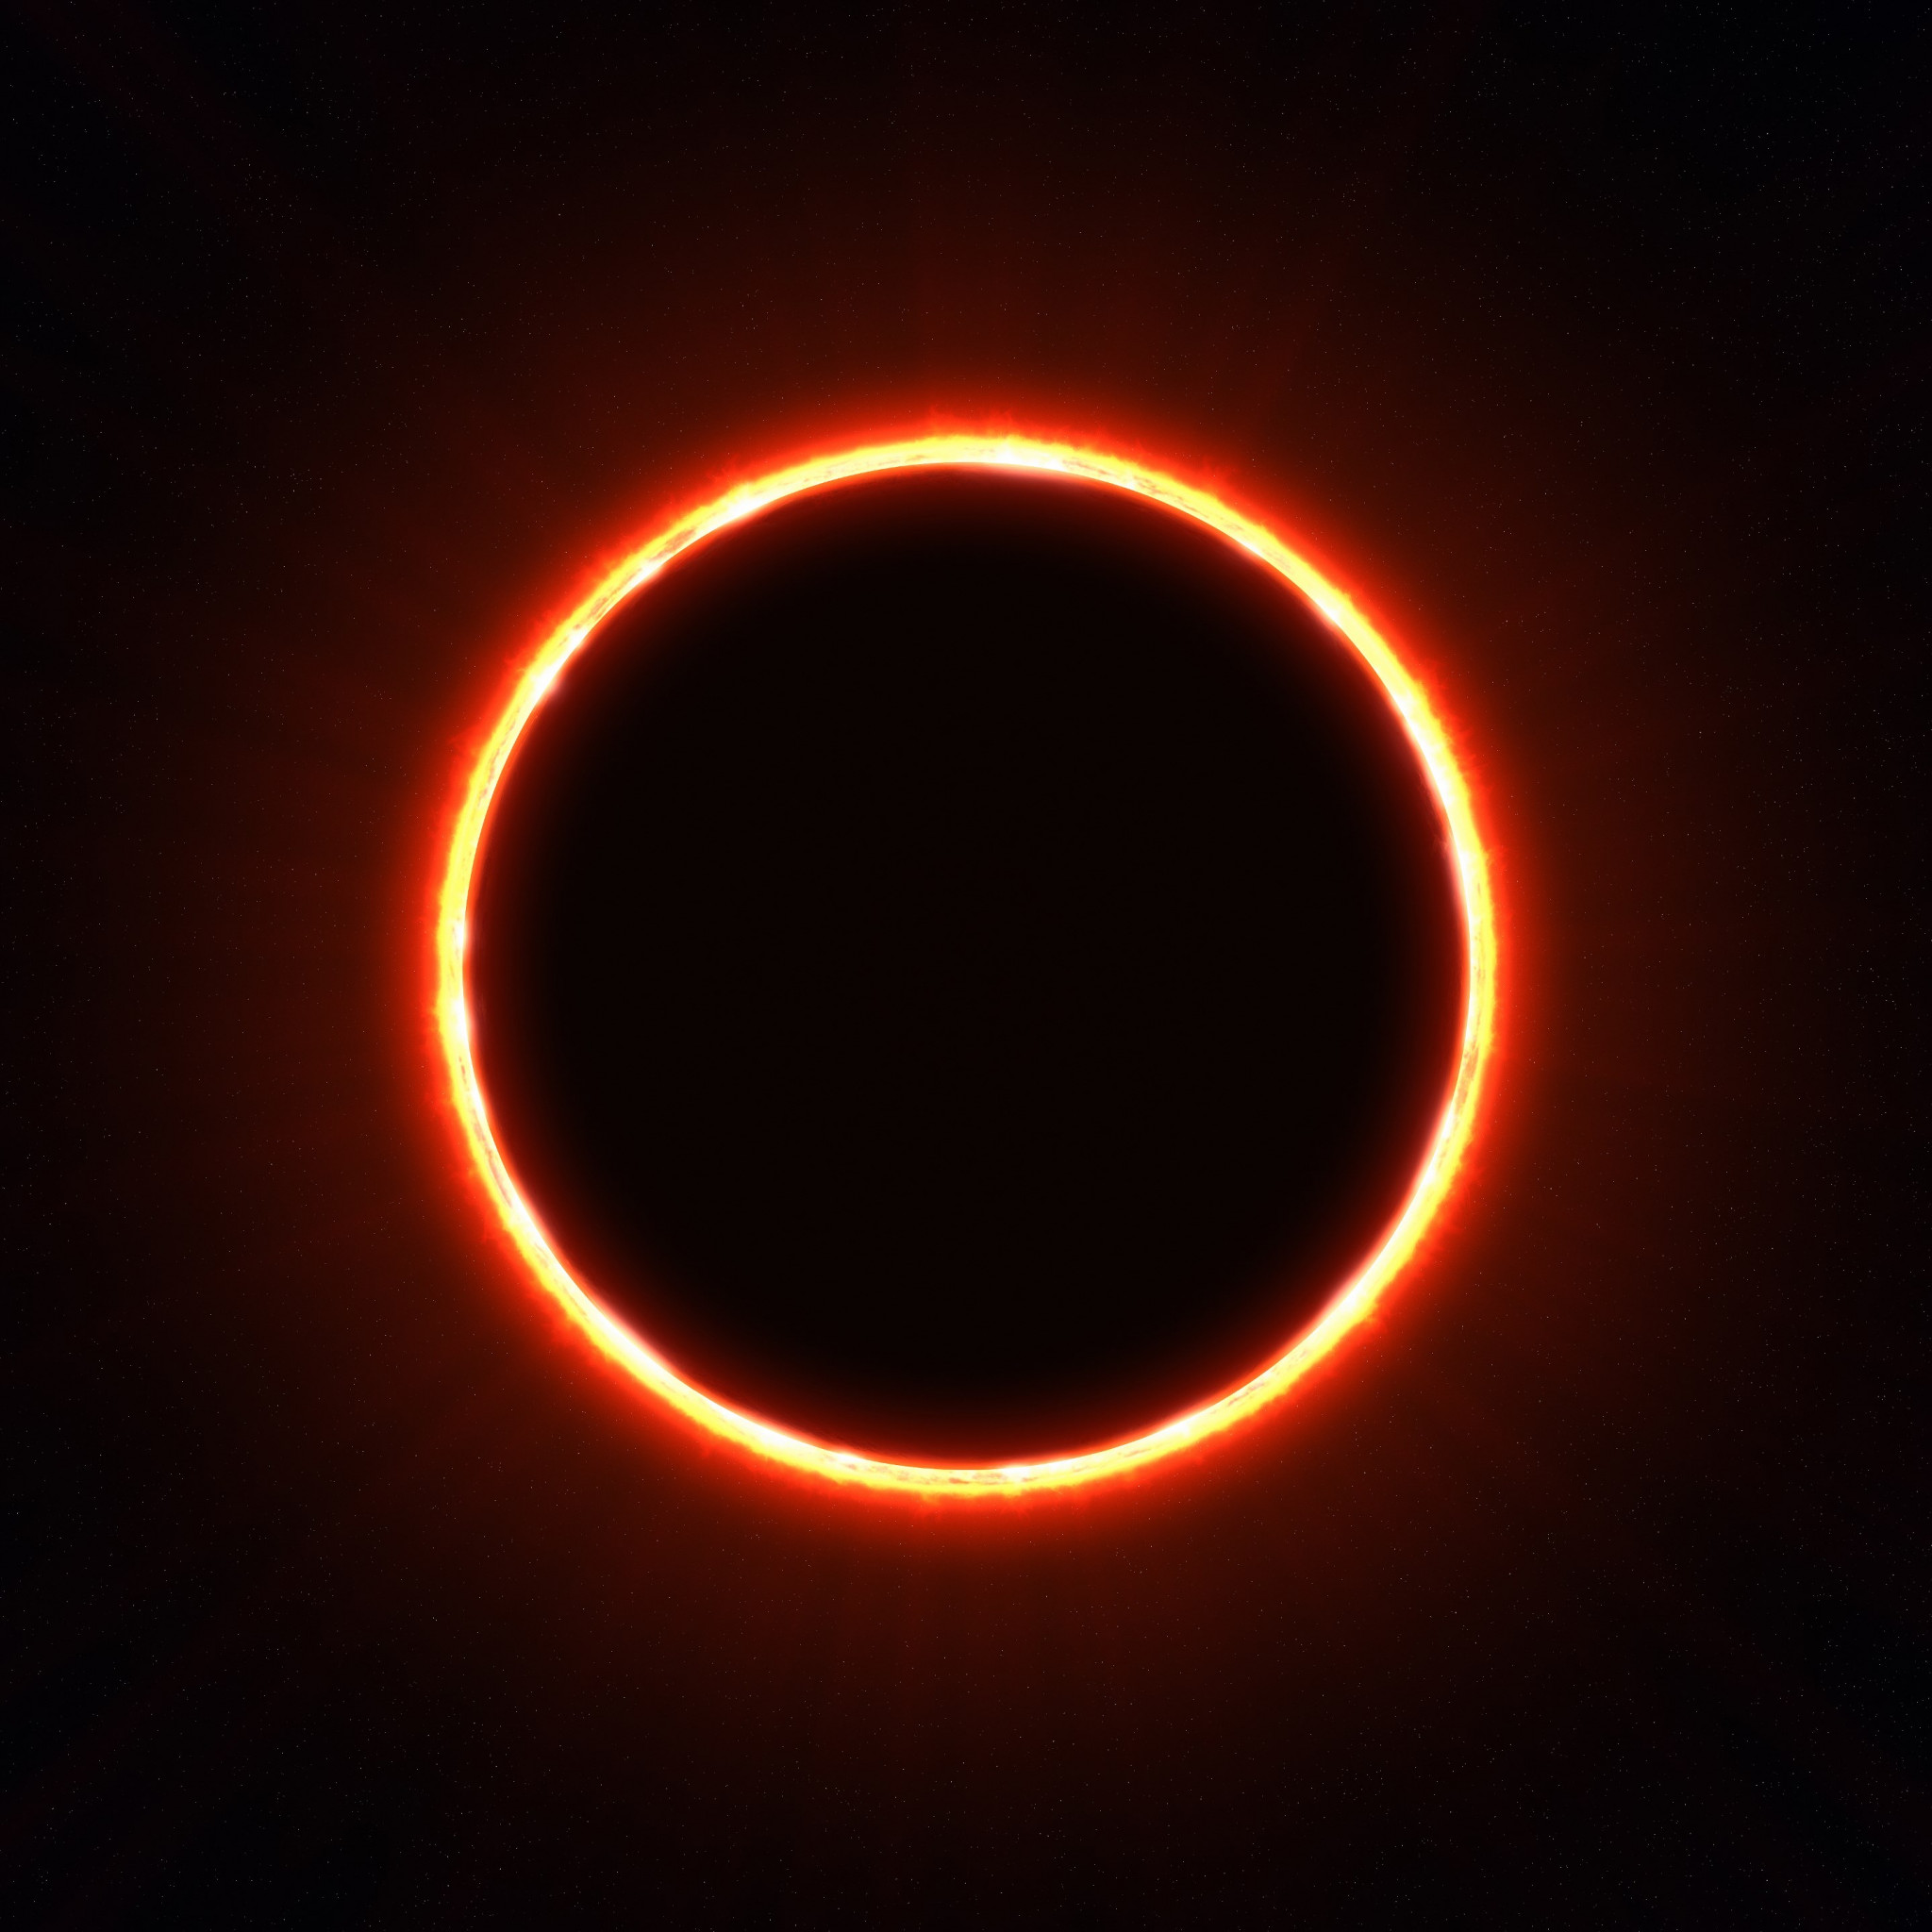 Eclipse wallpaper 2048x2048